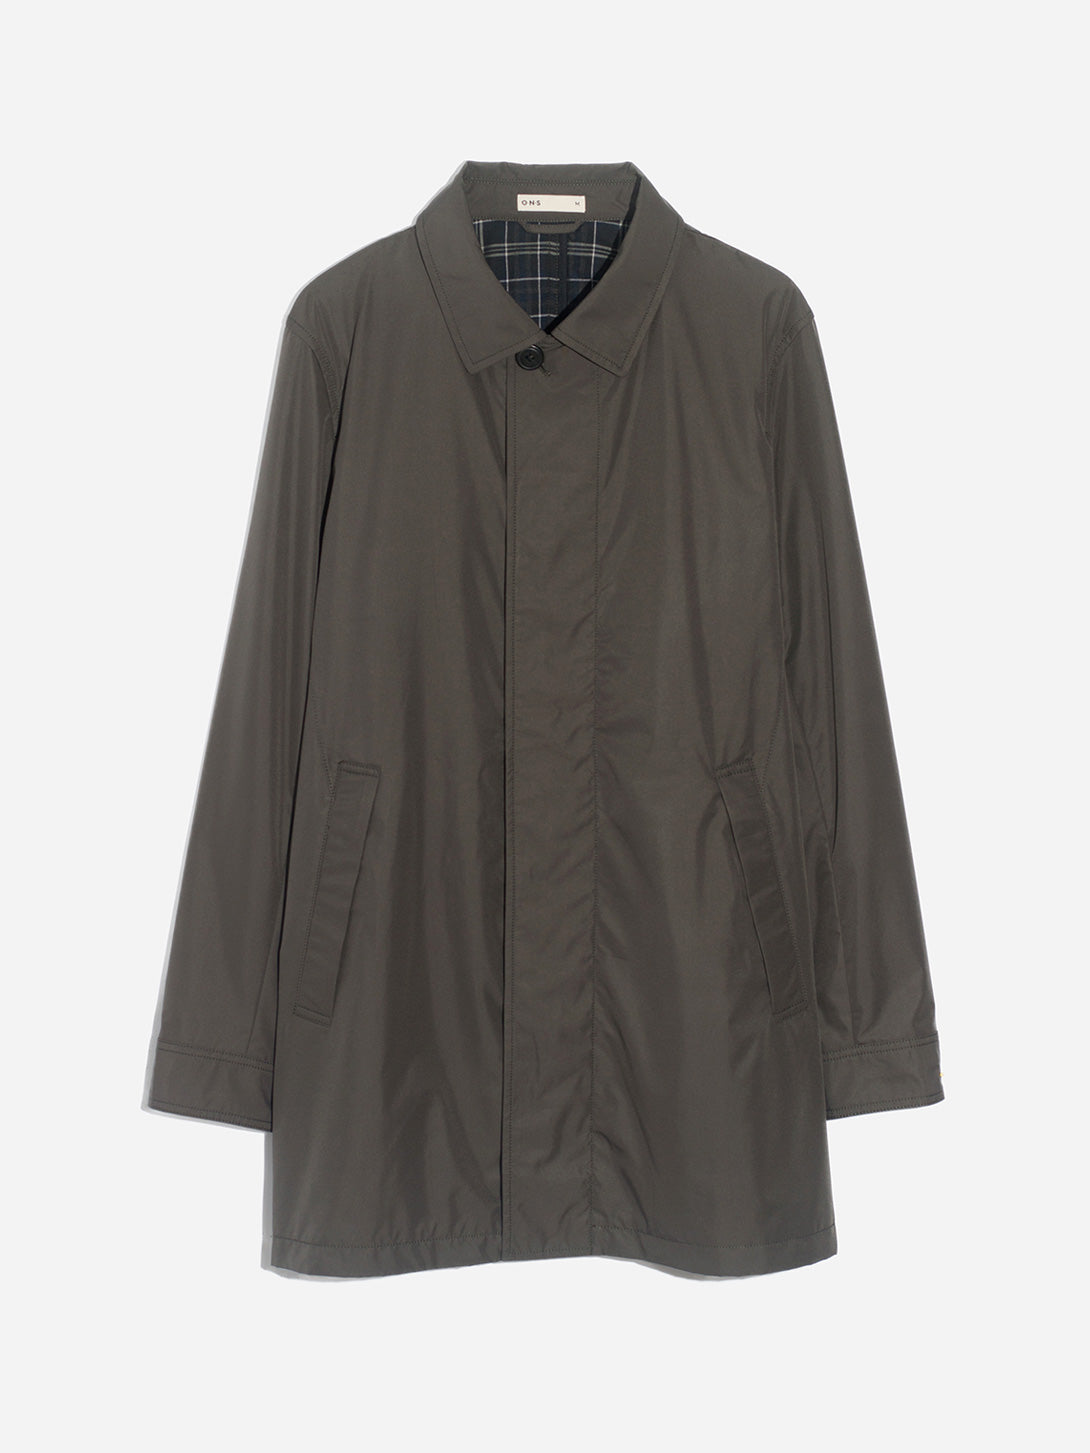 OLIVE PARKER JACKET ONS CLOTHING